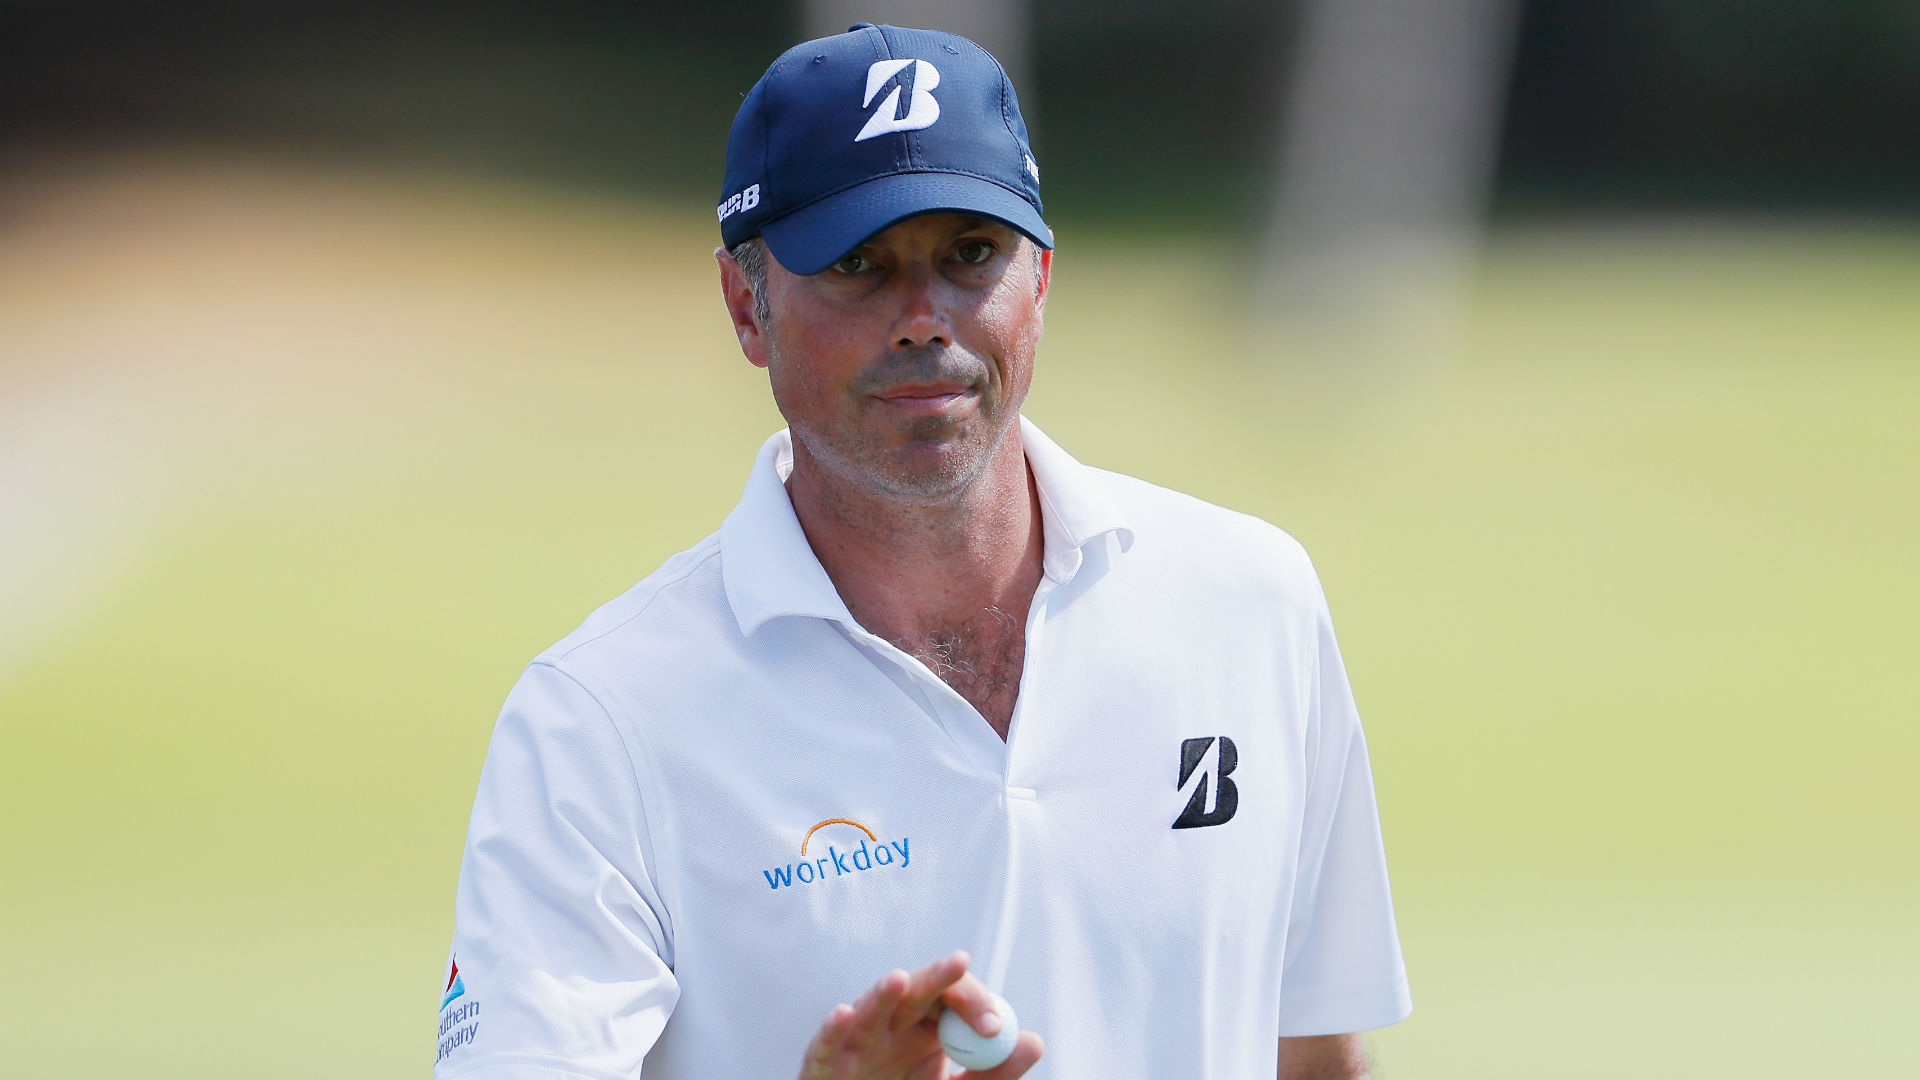 Sony Open in Hawaii: Matt Kuchar moves into lead after back-to-back 7-under 63s